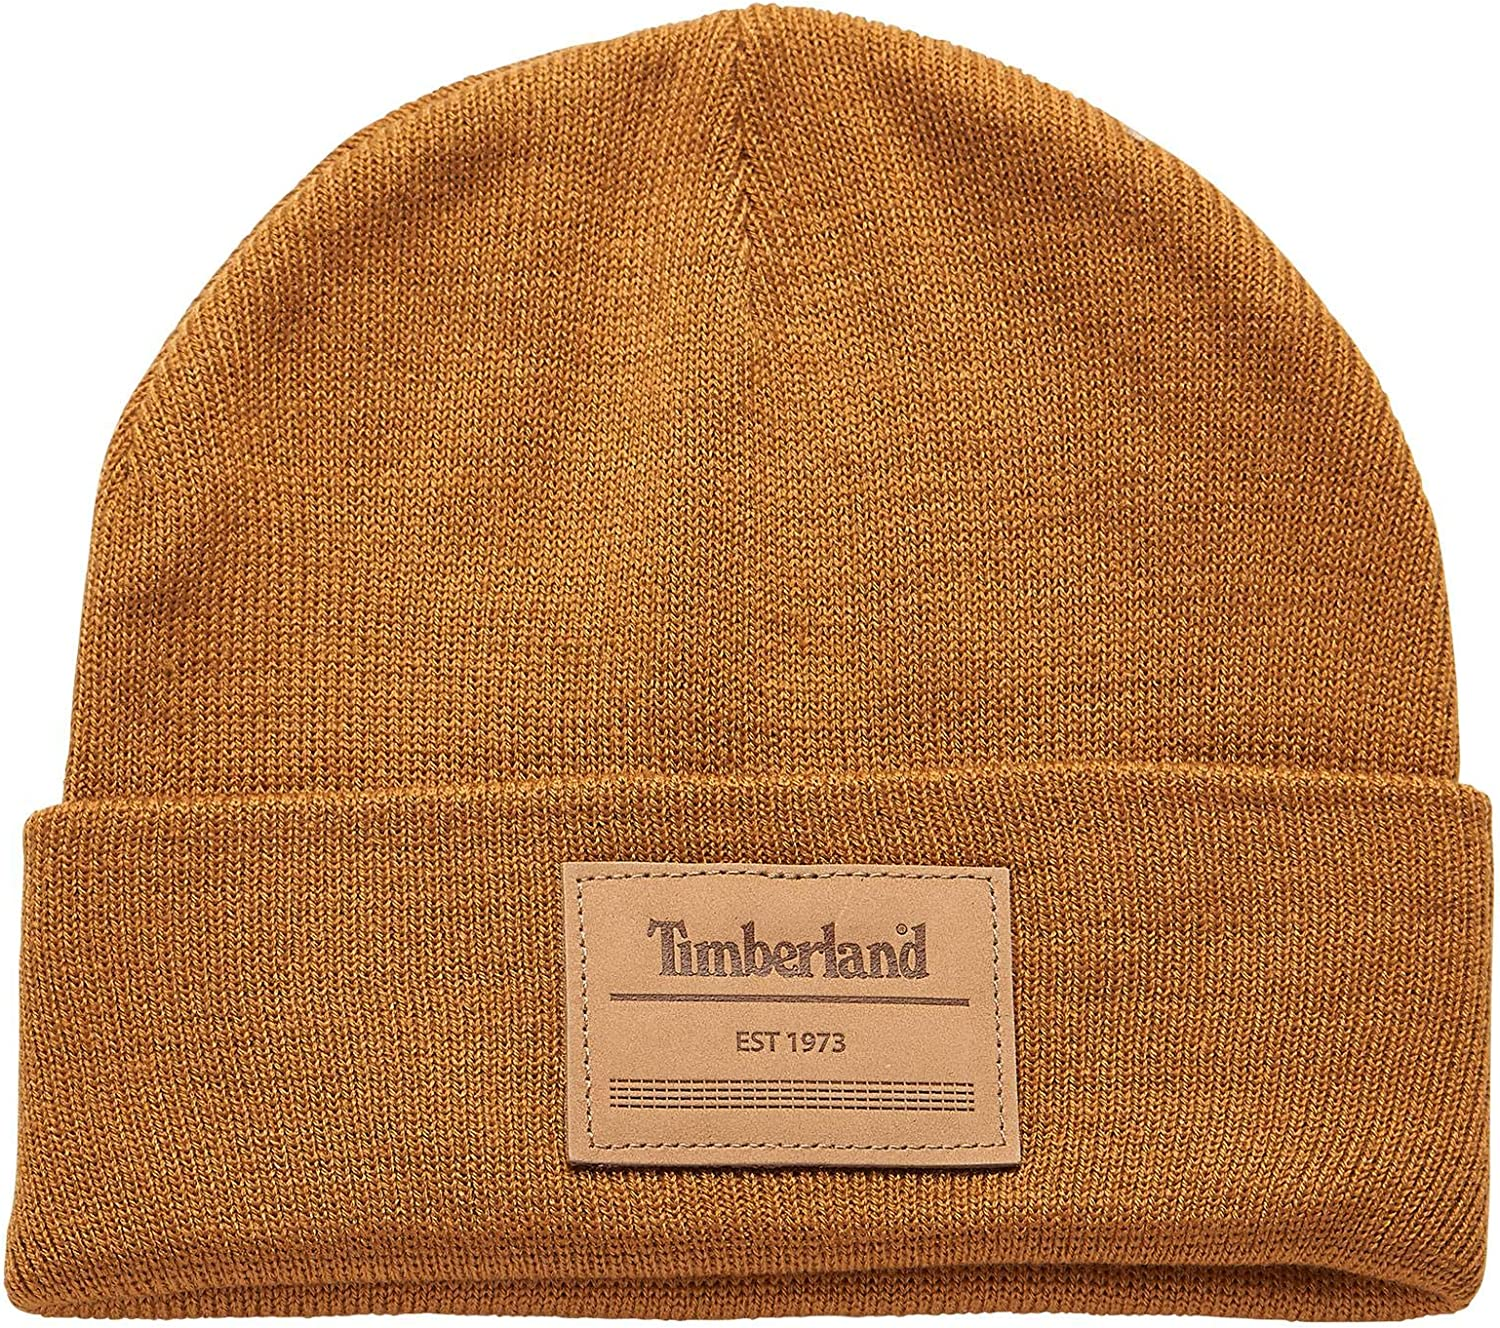 OFFicial site Timberland Men`s Heat Retention Watch Super sale period limited Cap Beanie Knit Leath with